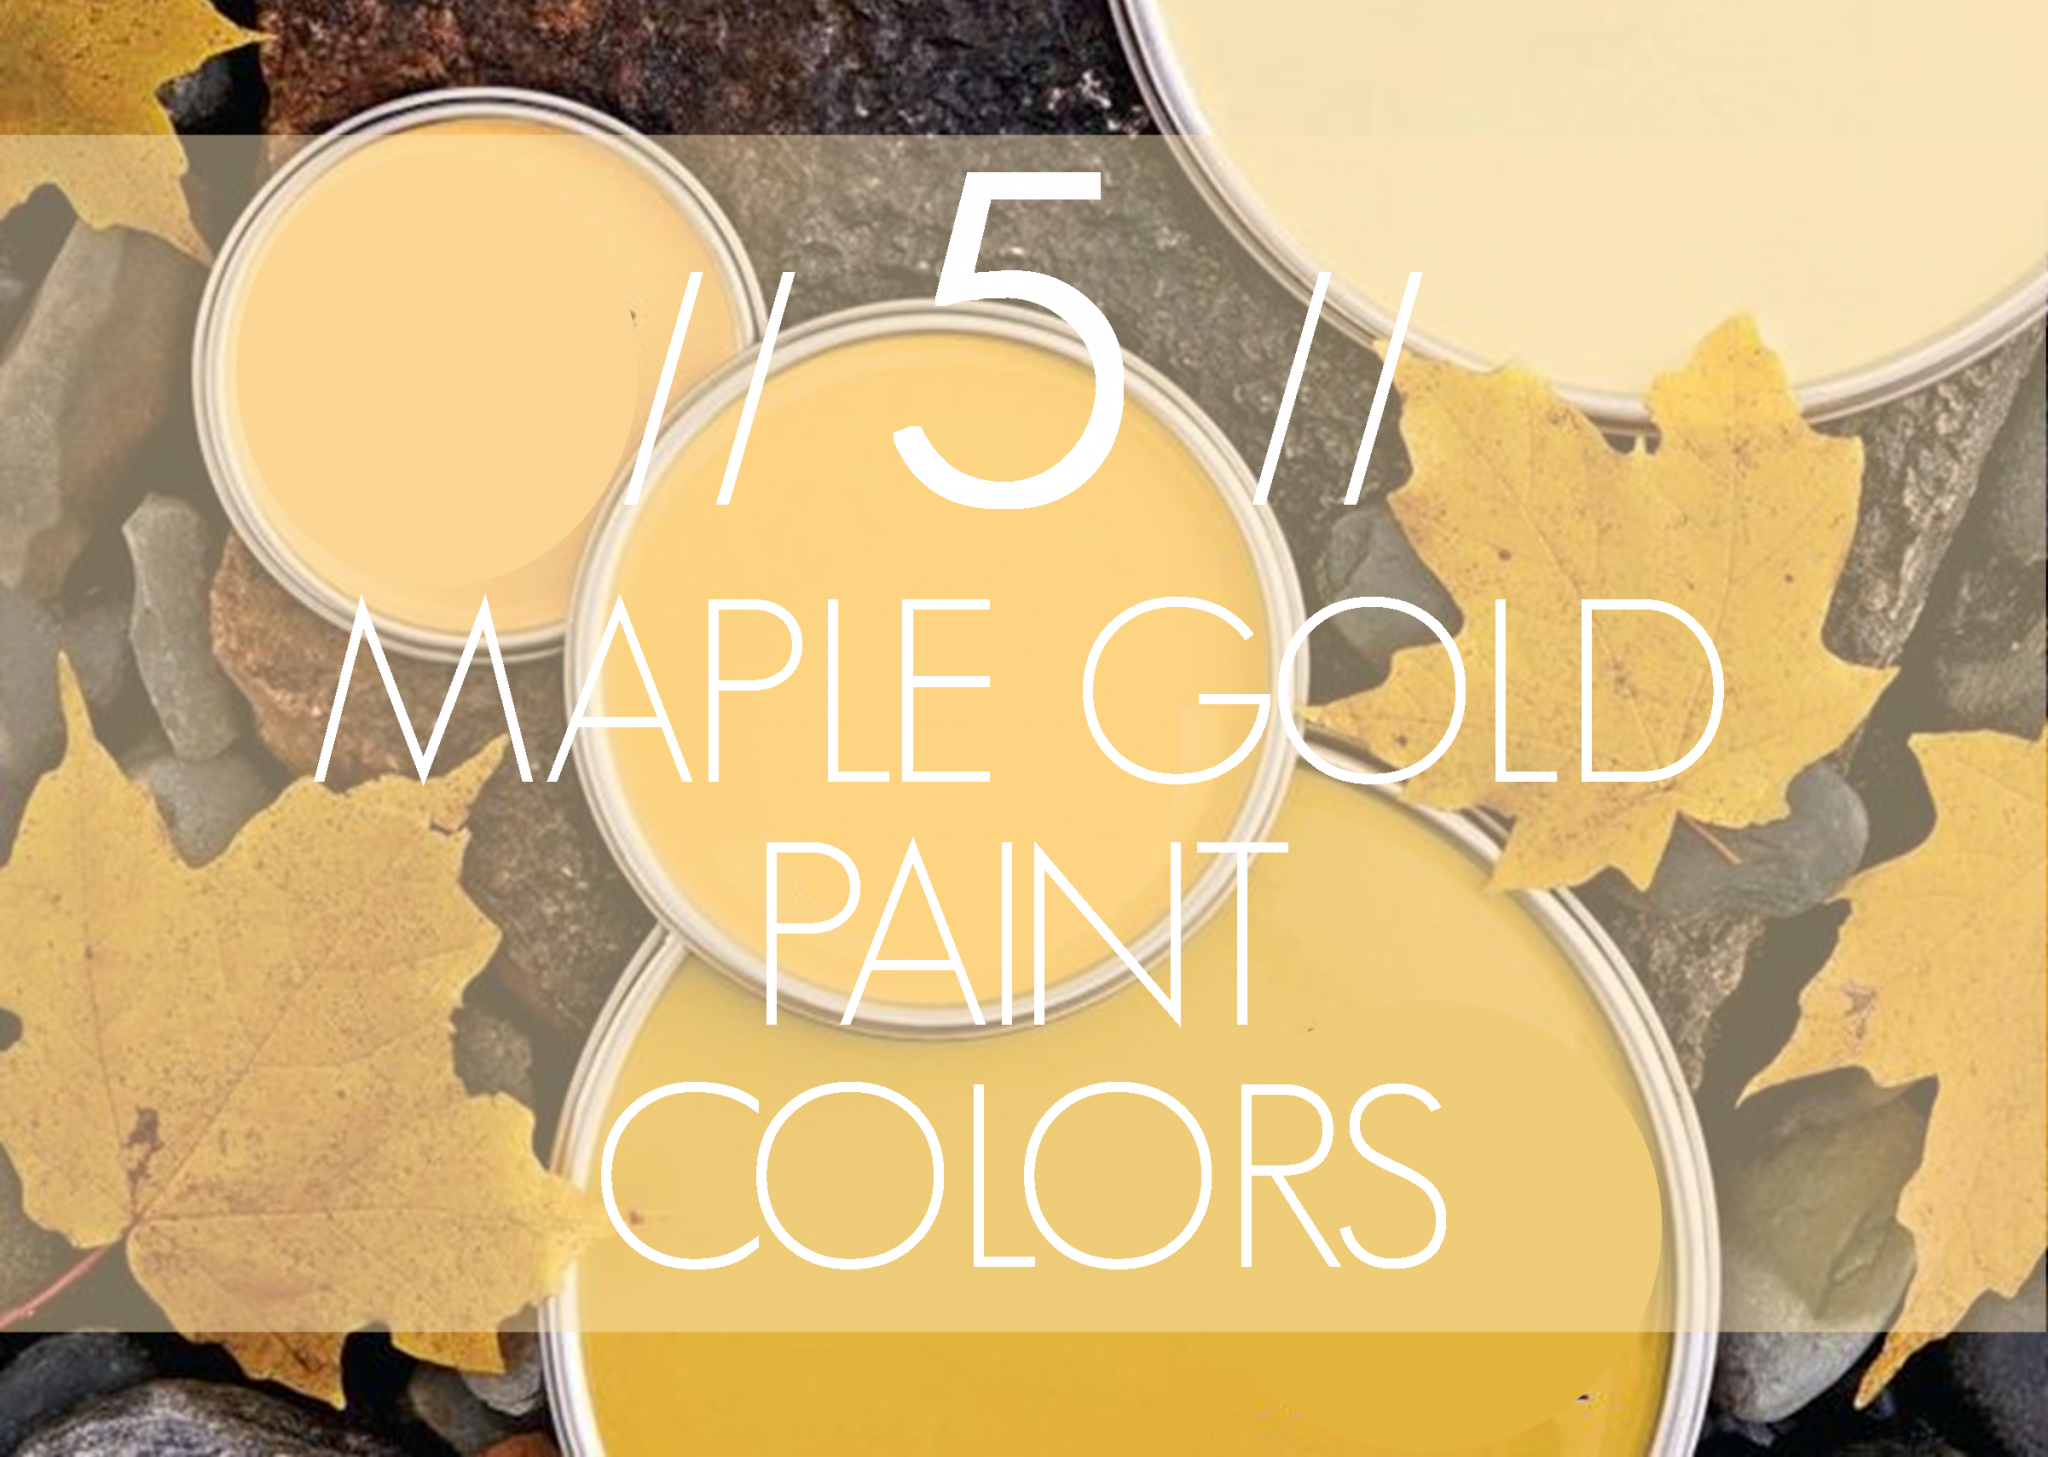 Imagine Design 5 Maple Gold Paint Colors From Better